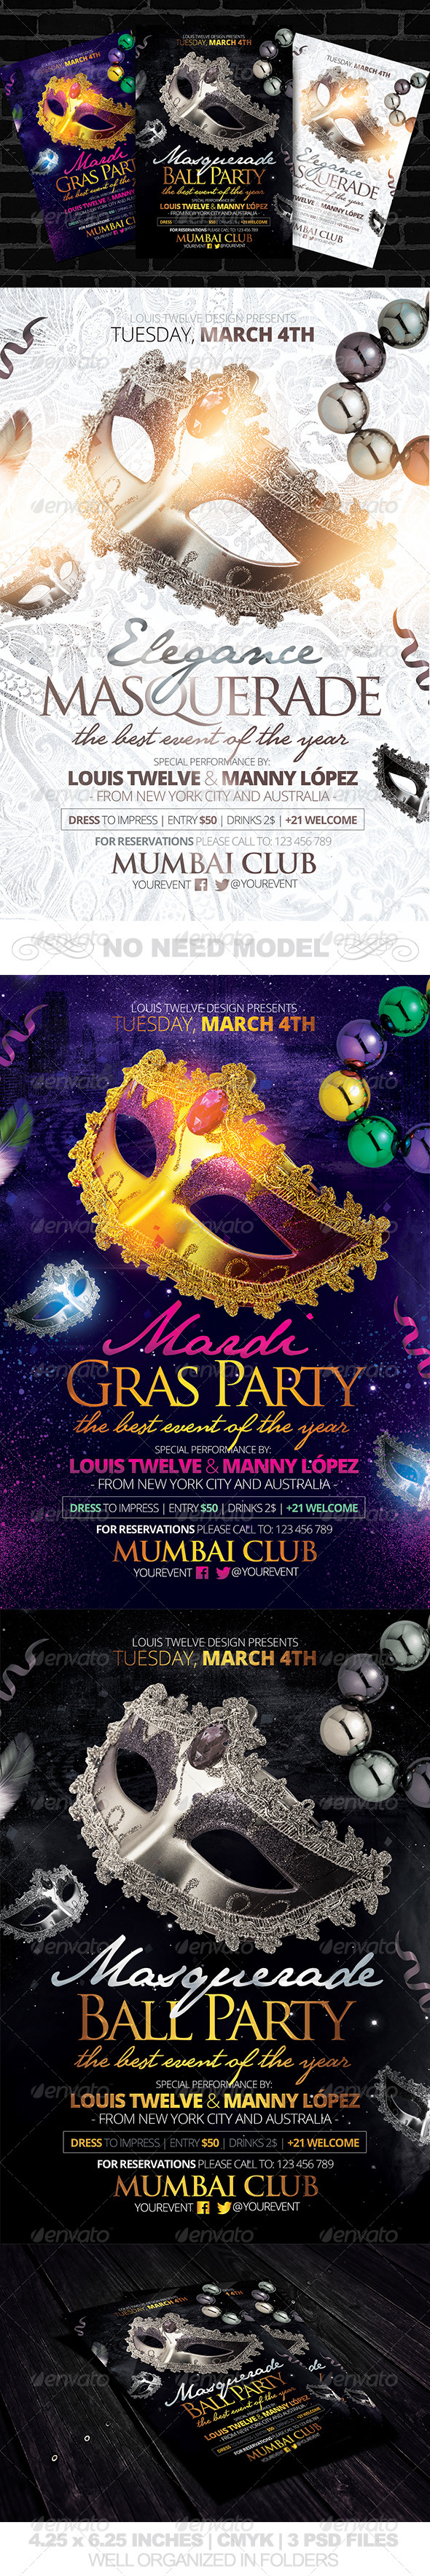 GraphicRiver Masquerade Ball Mardi Gras Party Flyers Template 6396796